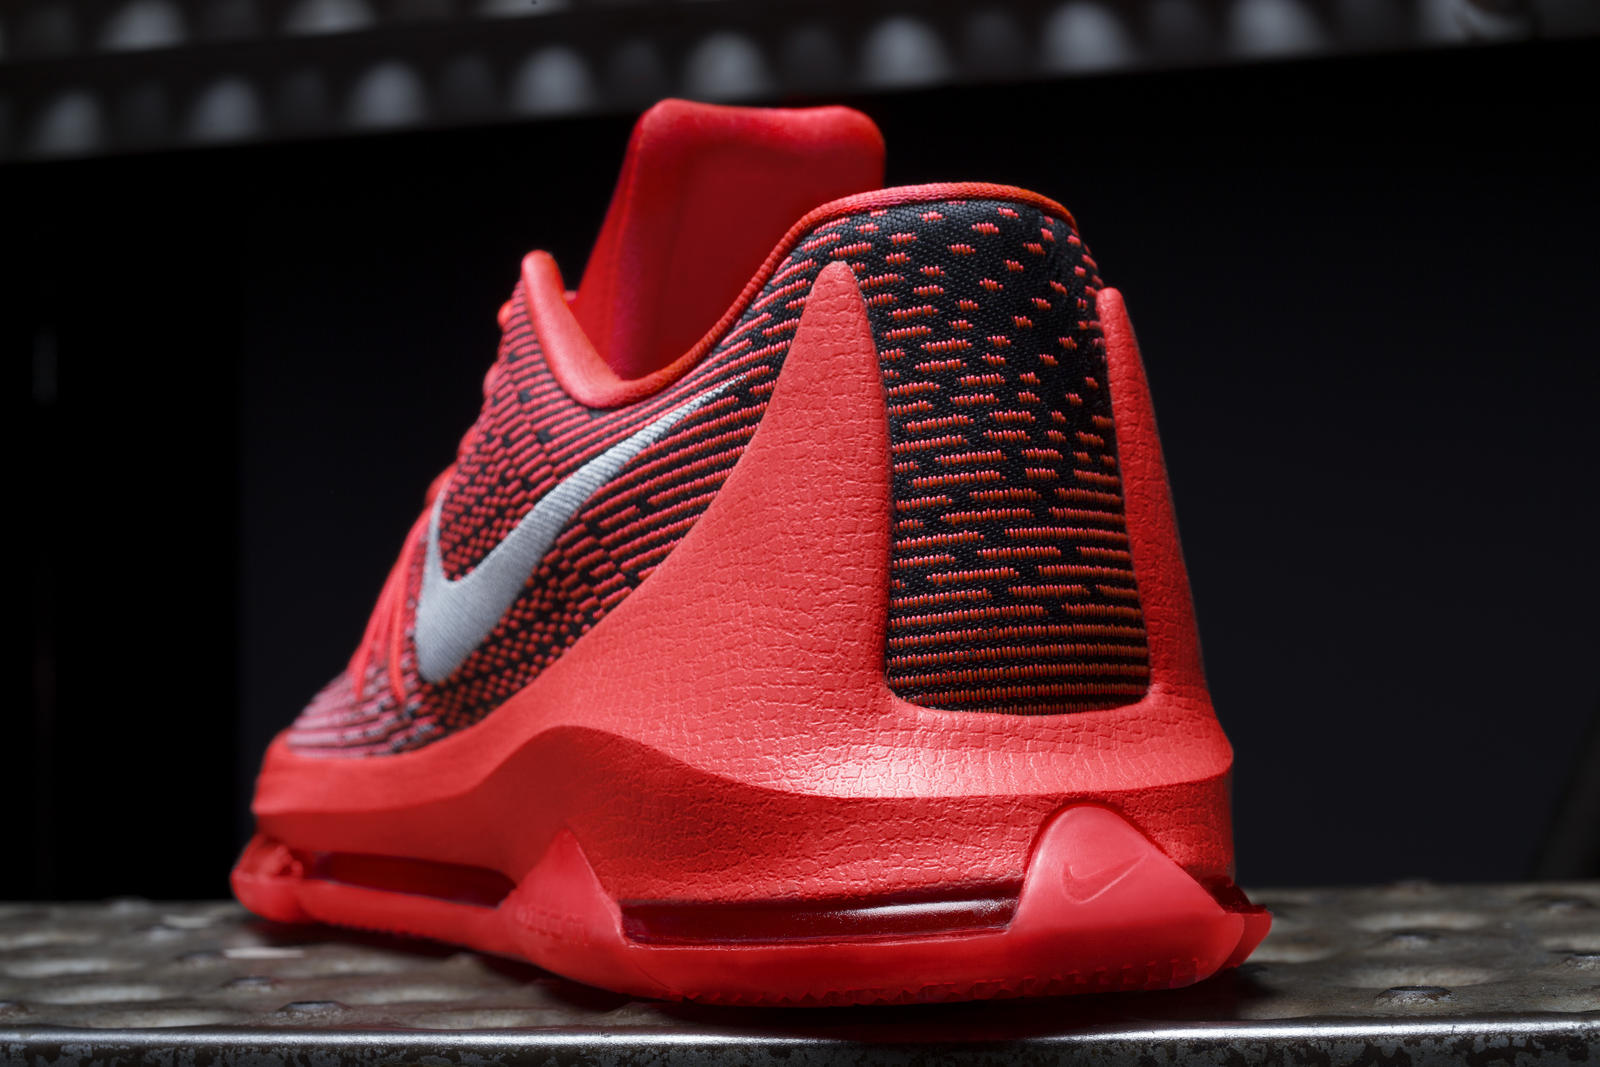 KD8 Combines Flyweave technology and